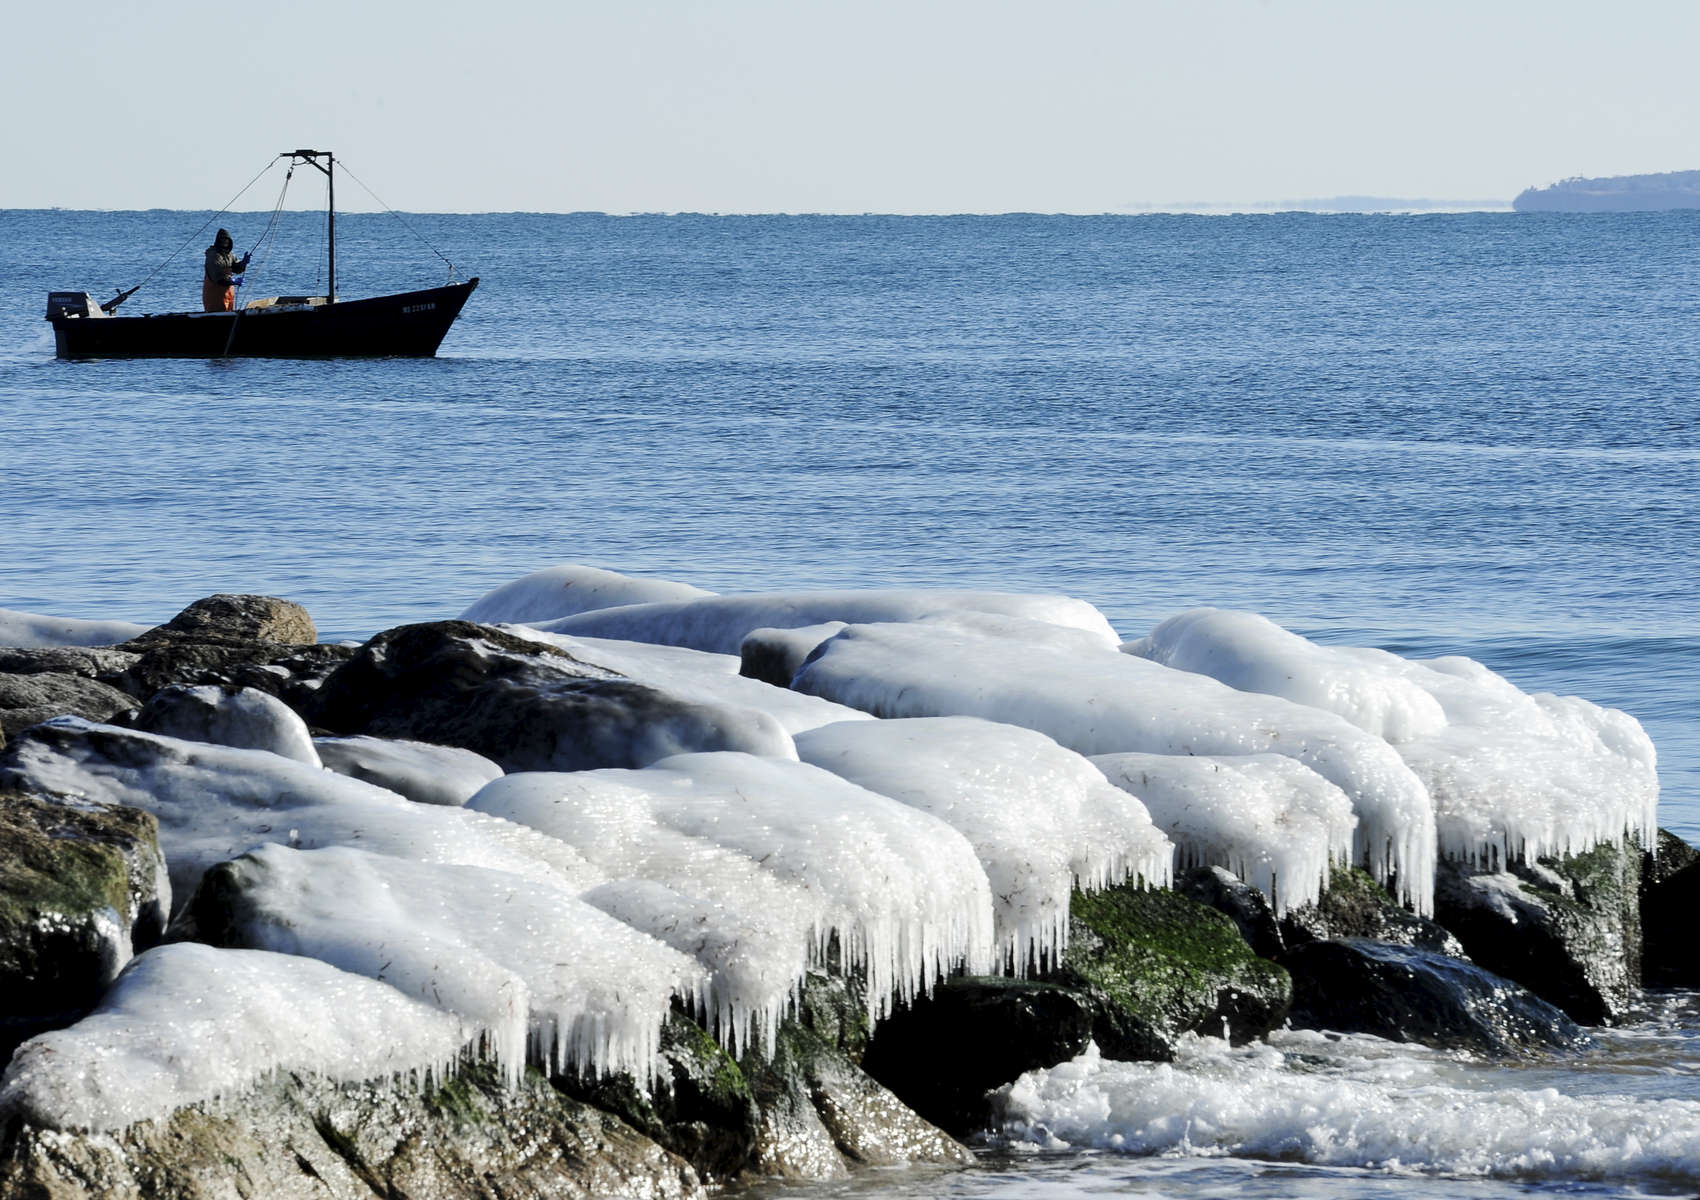 FALMOUTH -- 010914 -- A fisherman hauls up his catch near an ice-coated jetty off Surf Drive on Vineyard Sound.   Christine Hochkeppel/Cape Cod Times